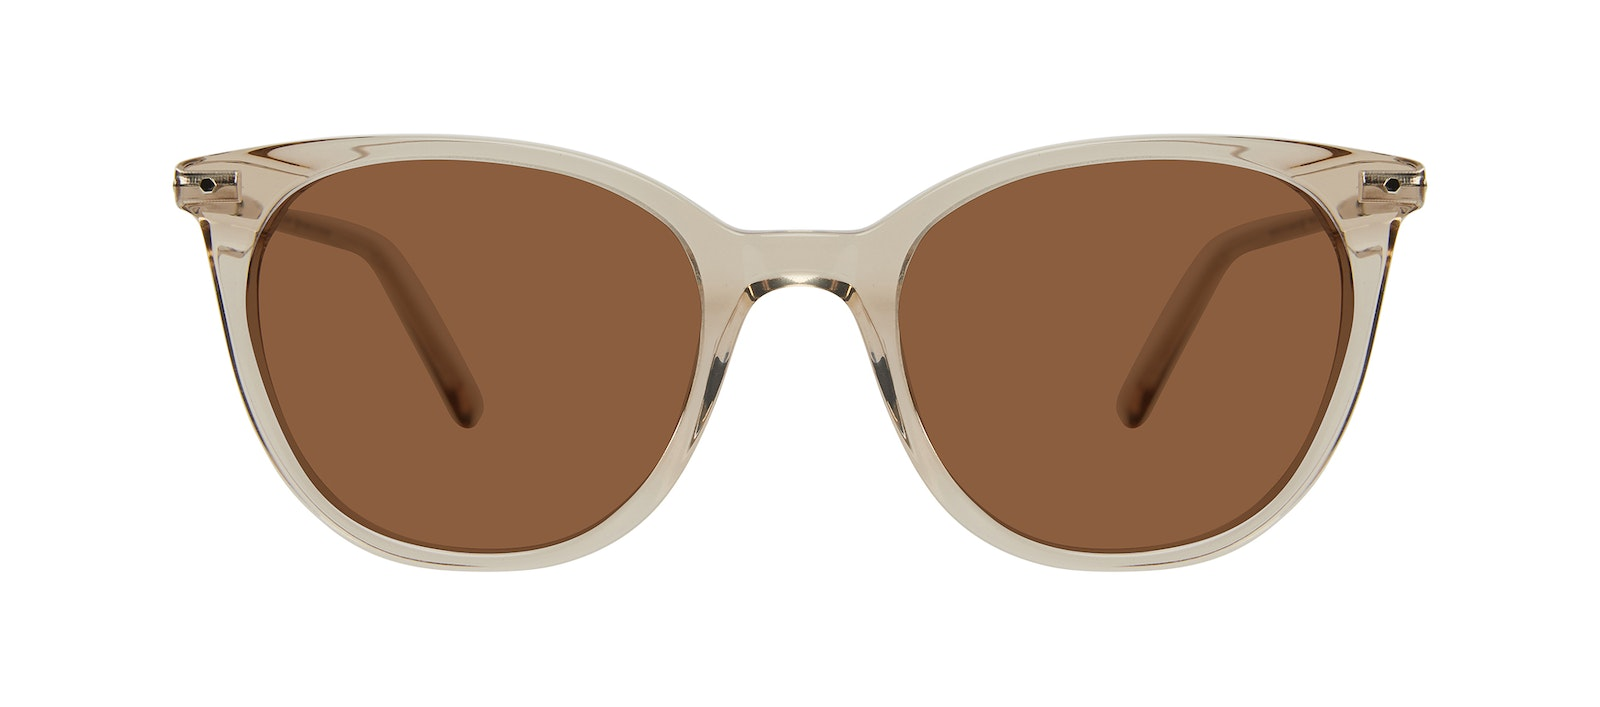 Affordable Fashion Glasses Square Sunglasses Women Wordly Olive Front